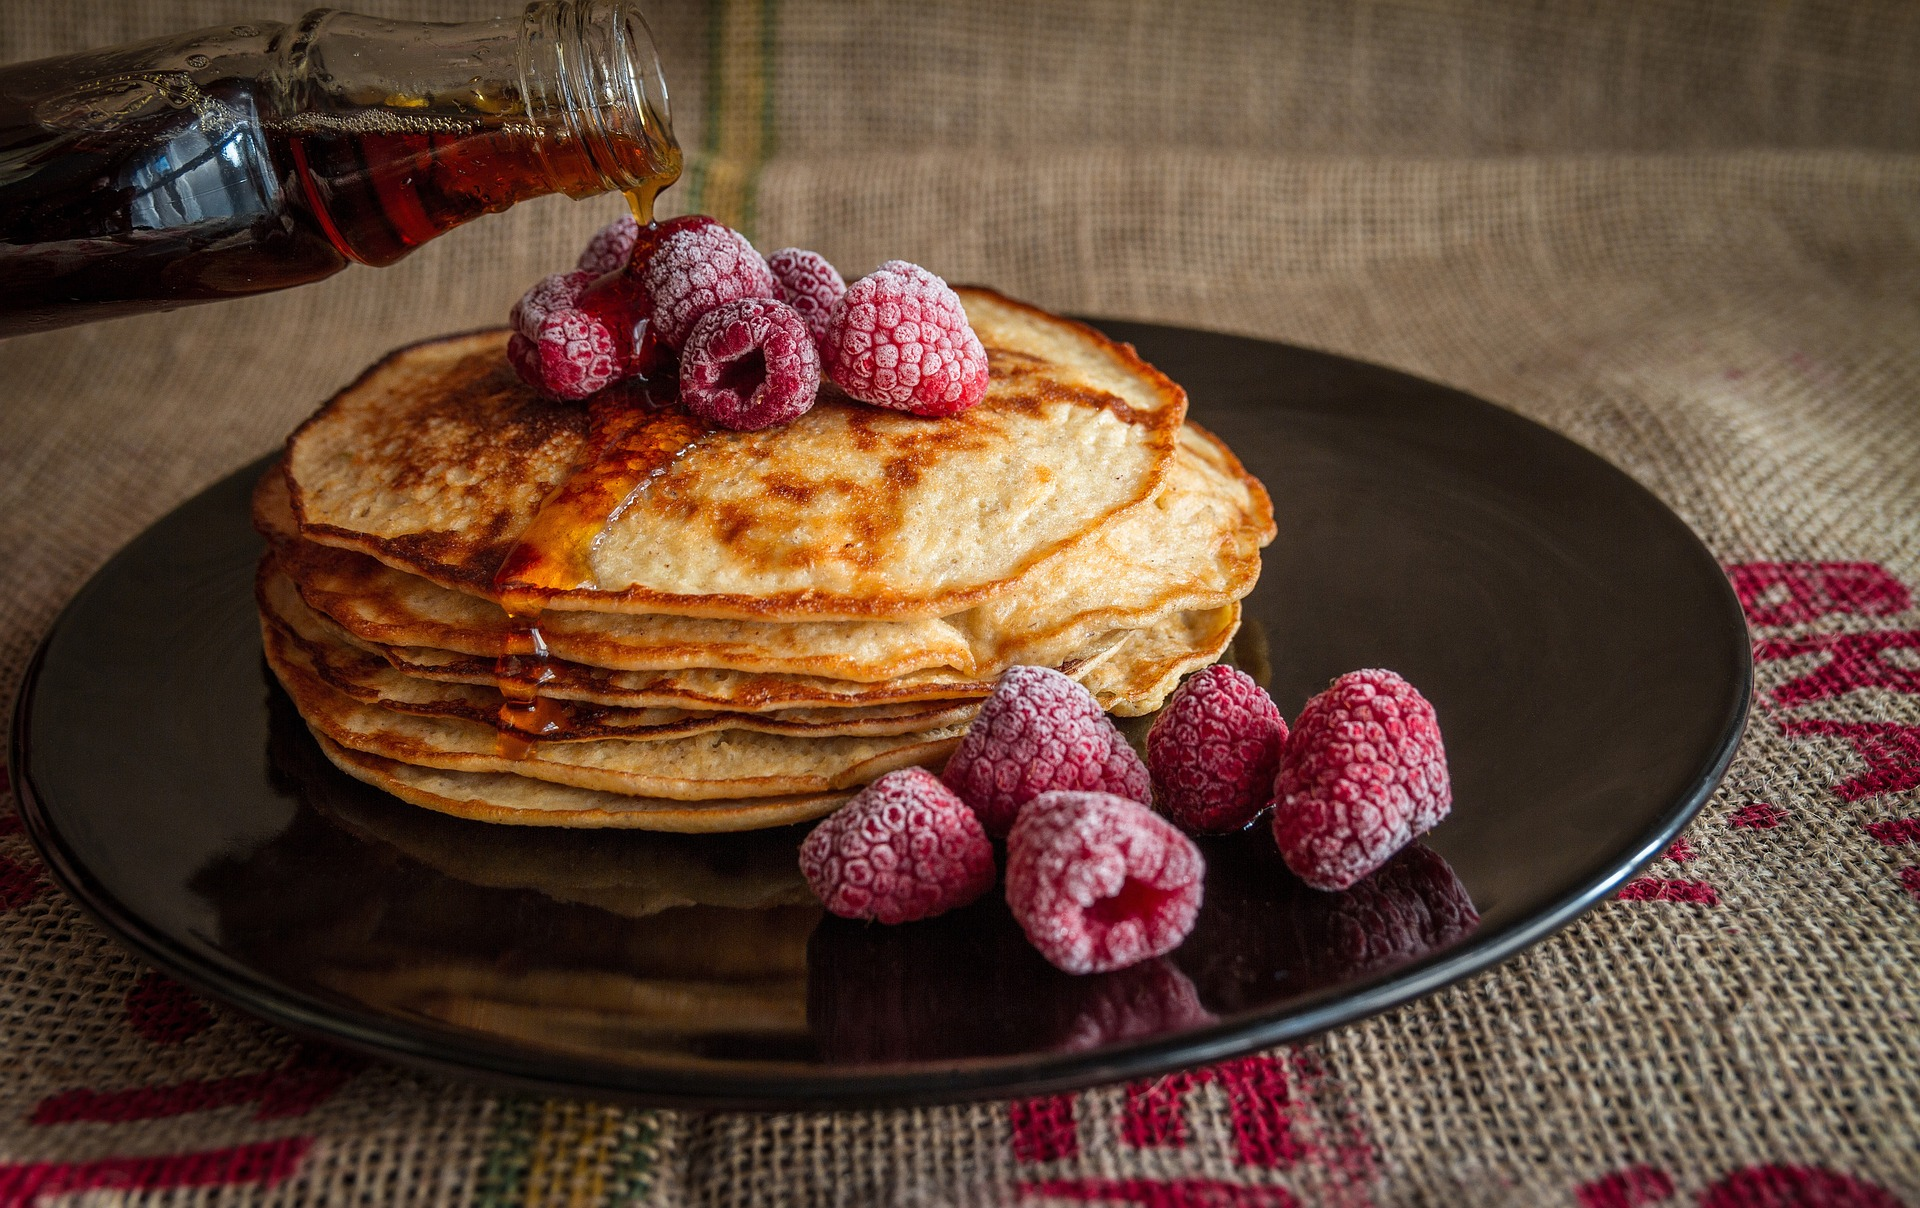 Why we eat pancakes on Shrove Tuesday - and other fun facts